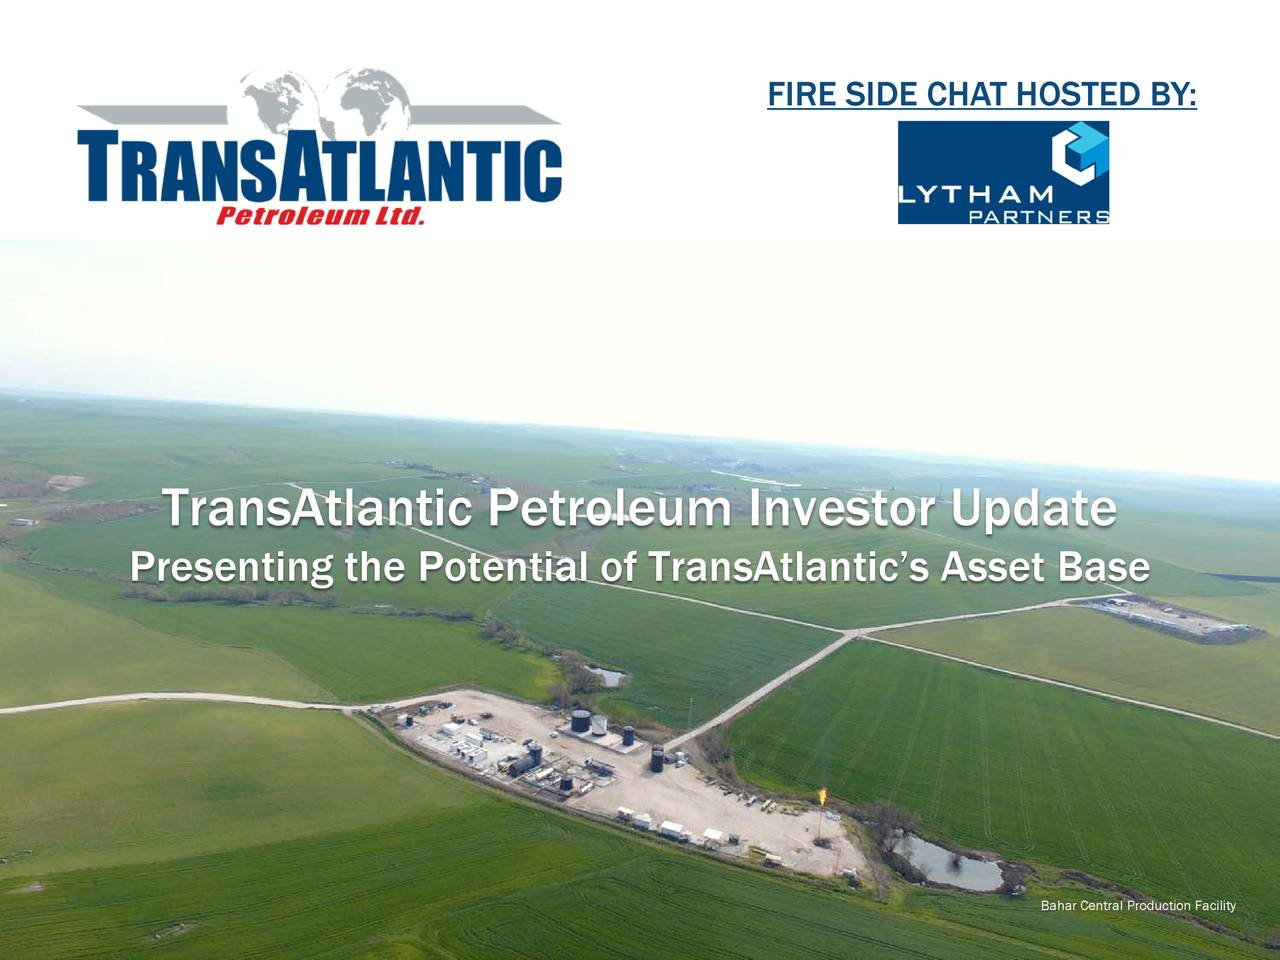 TransAtlantic Petroleum Investor Update Presenting the Potential of TransAtlantic's Asset Base Bahar Craalroddnnacicliitliyty